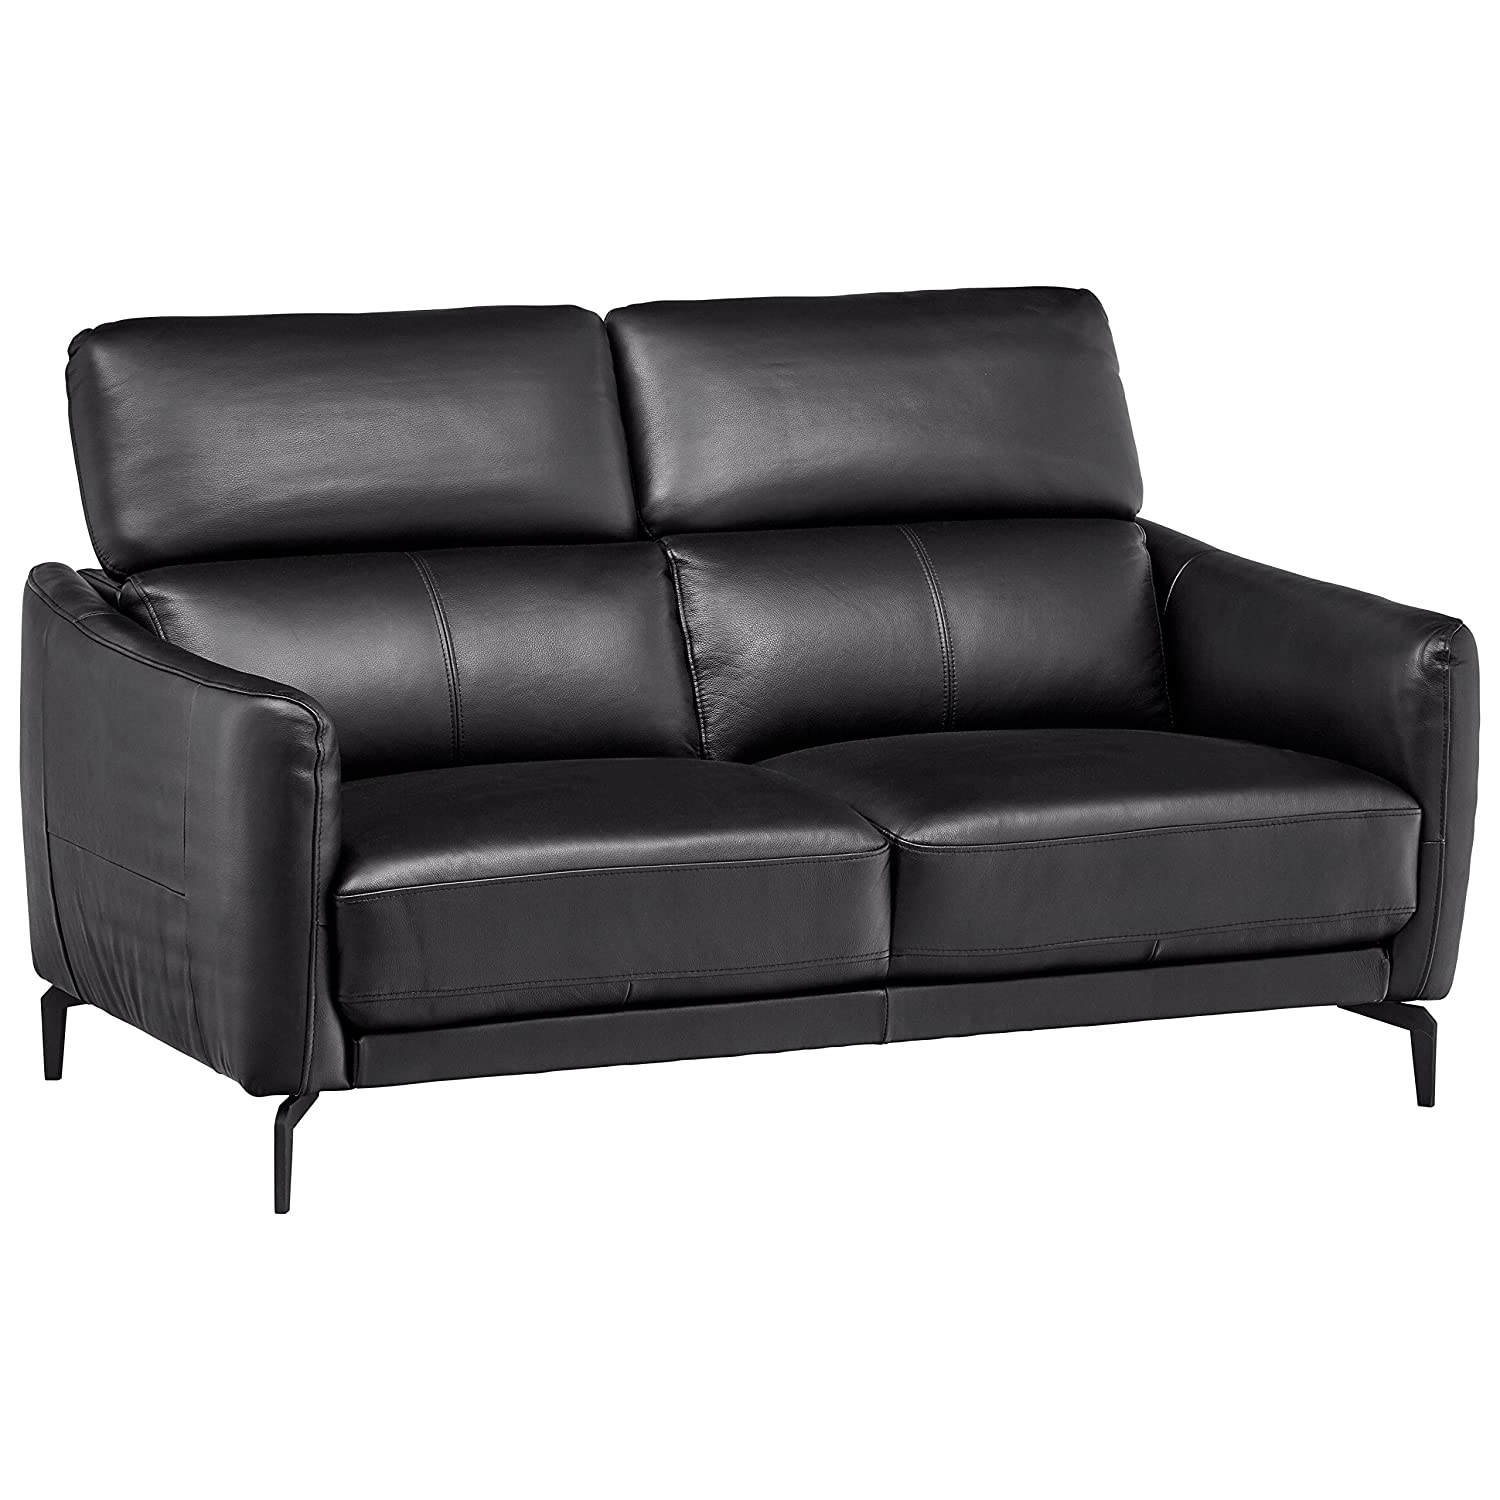 "Rivet Kaden Mid-Century Modern Adjustable Headrest Leather Loveseat Sofa, 61.8""W, Black Leather"